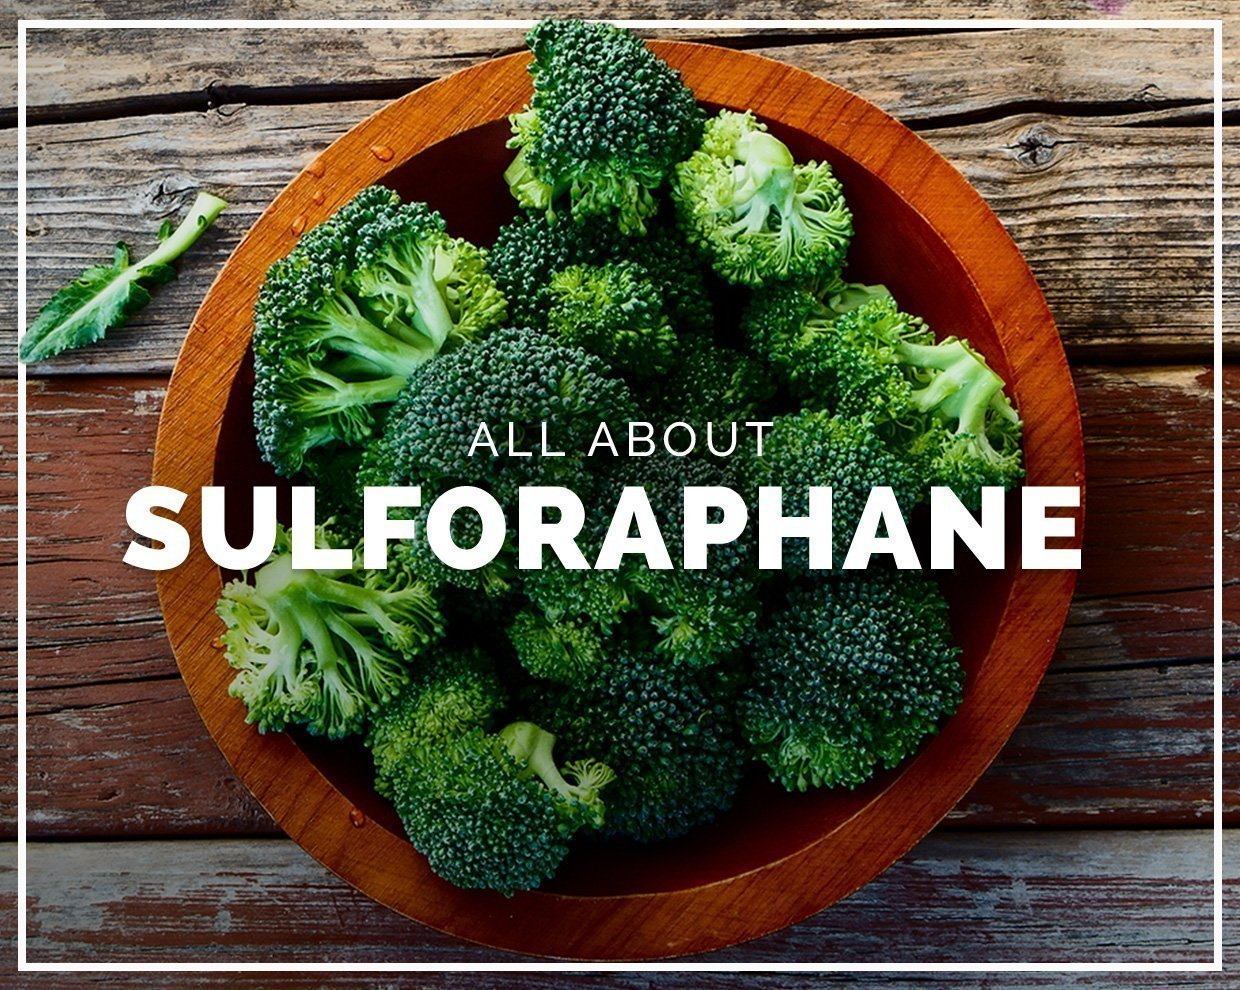 All about Sulforaphane